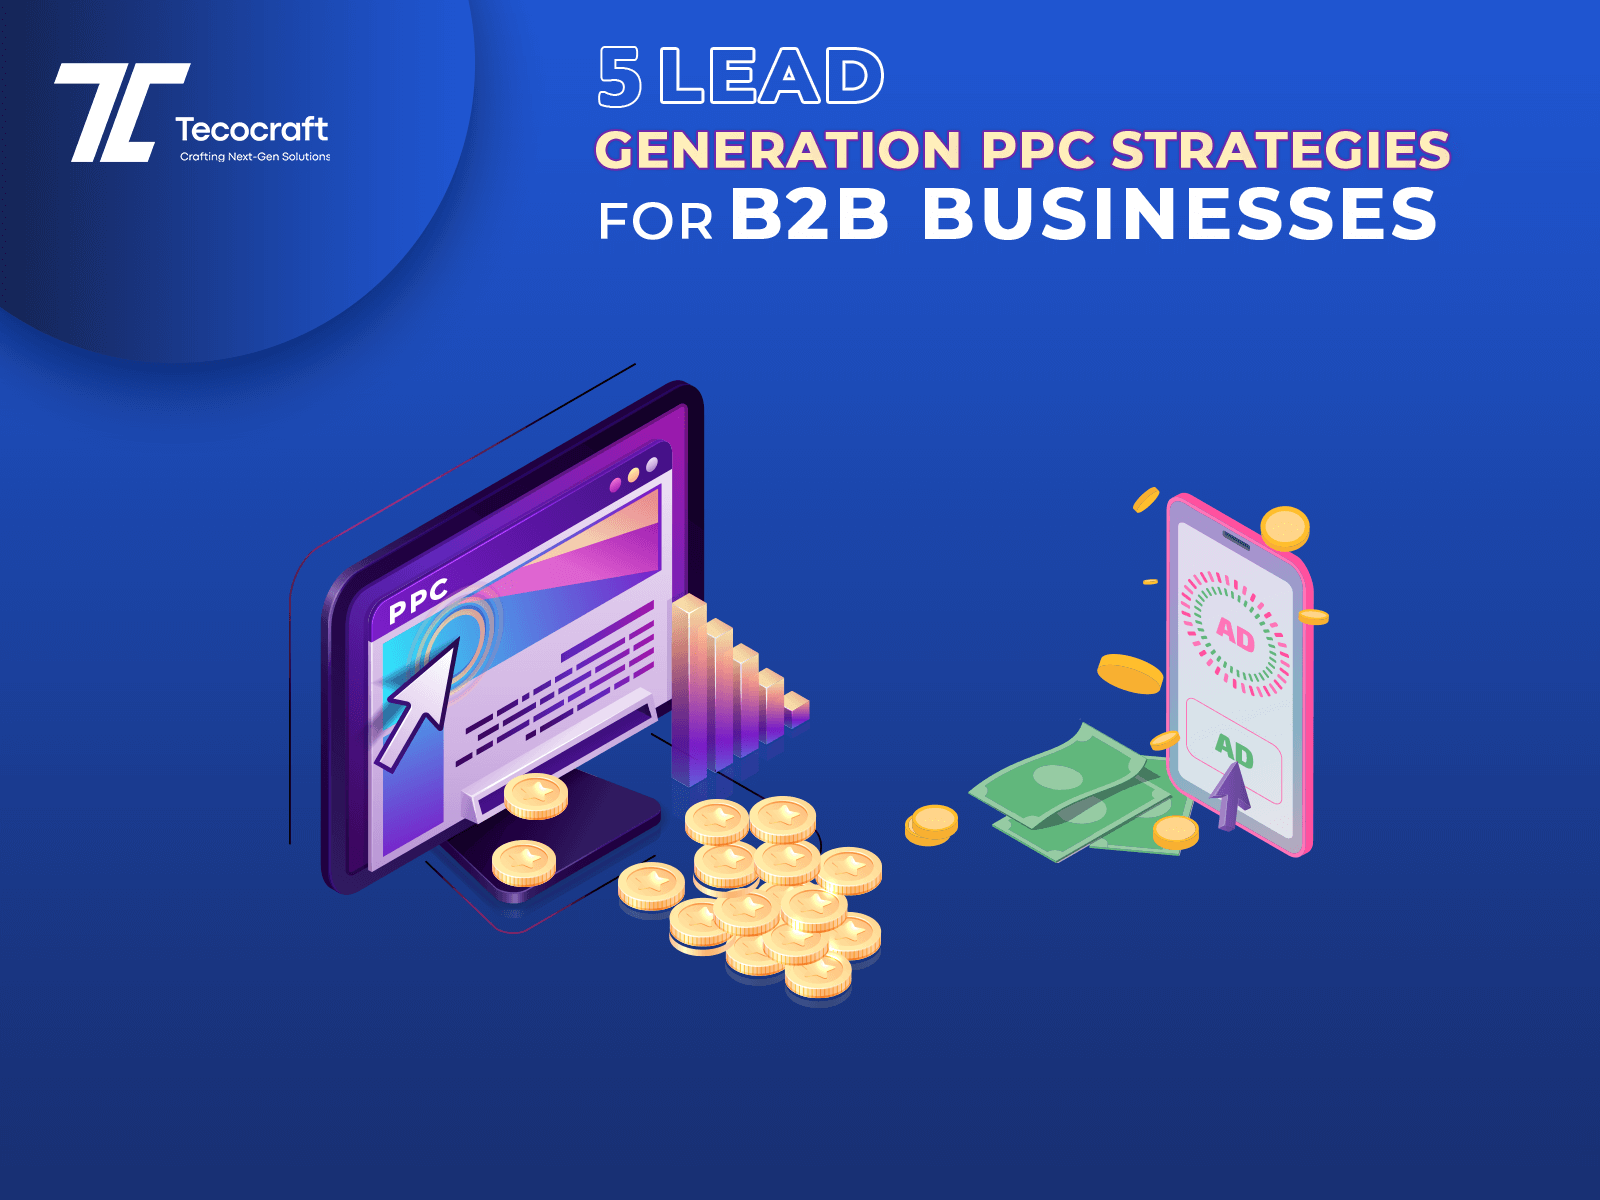 Lead Generation PPC Strategies For B2B Businesses